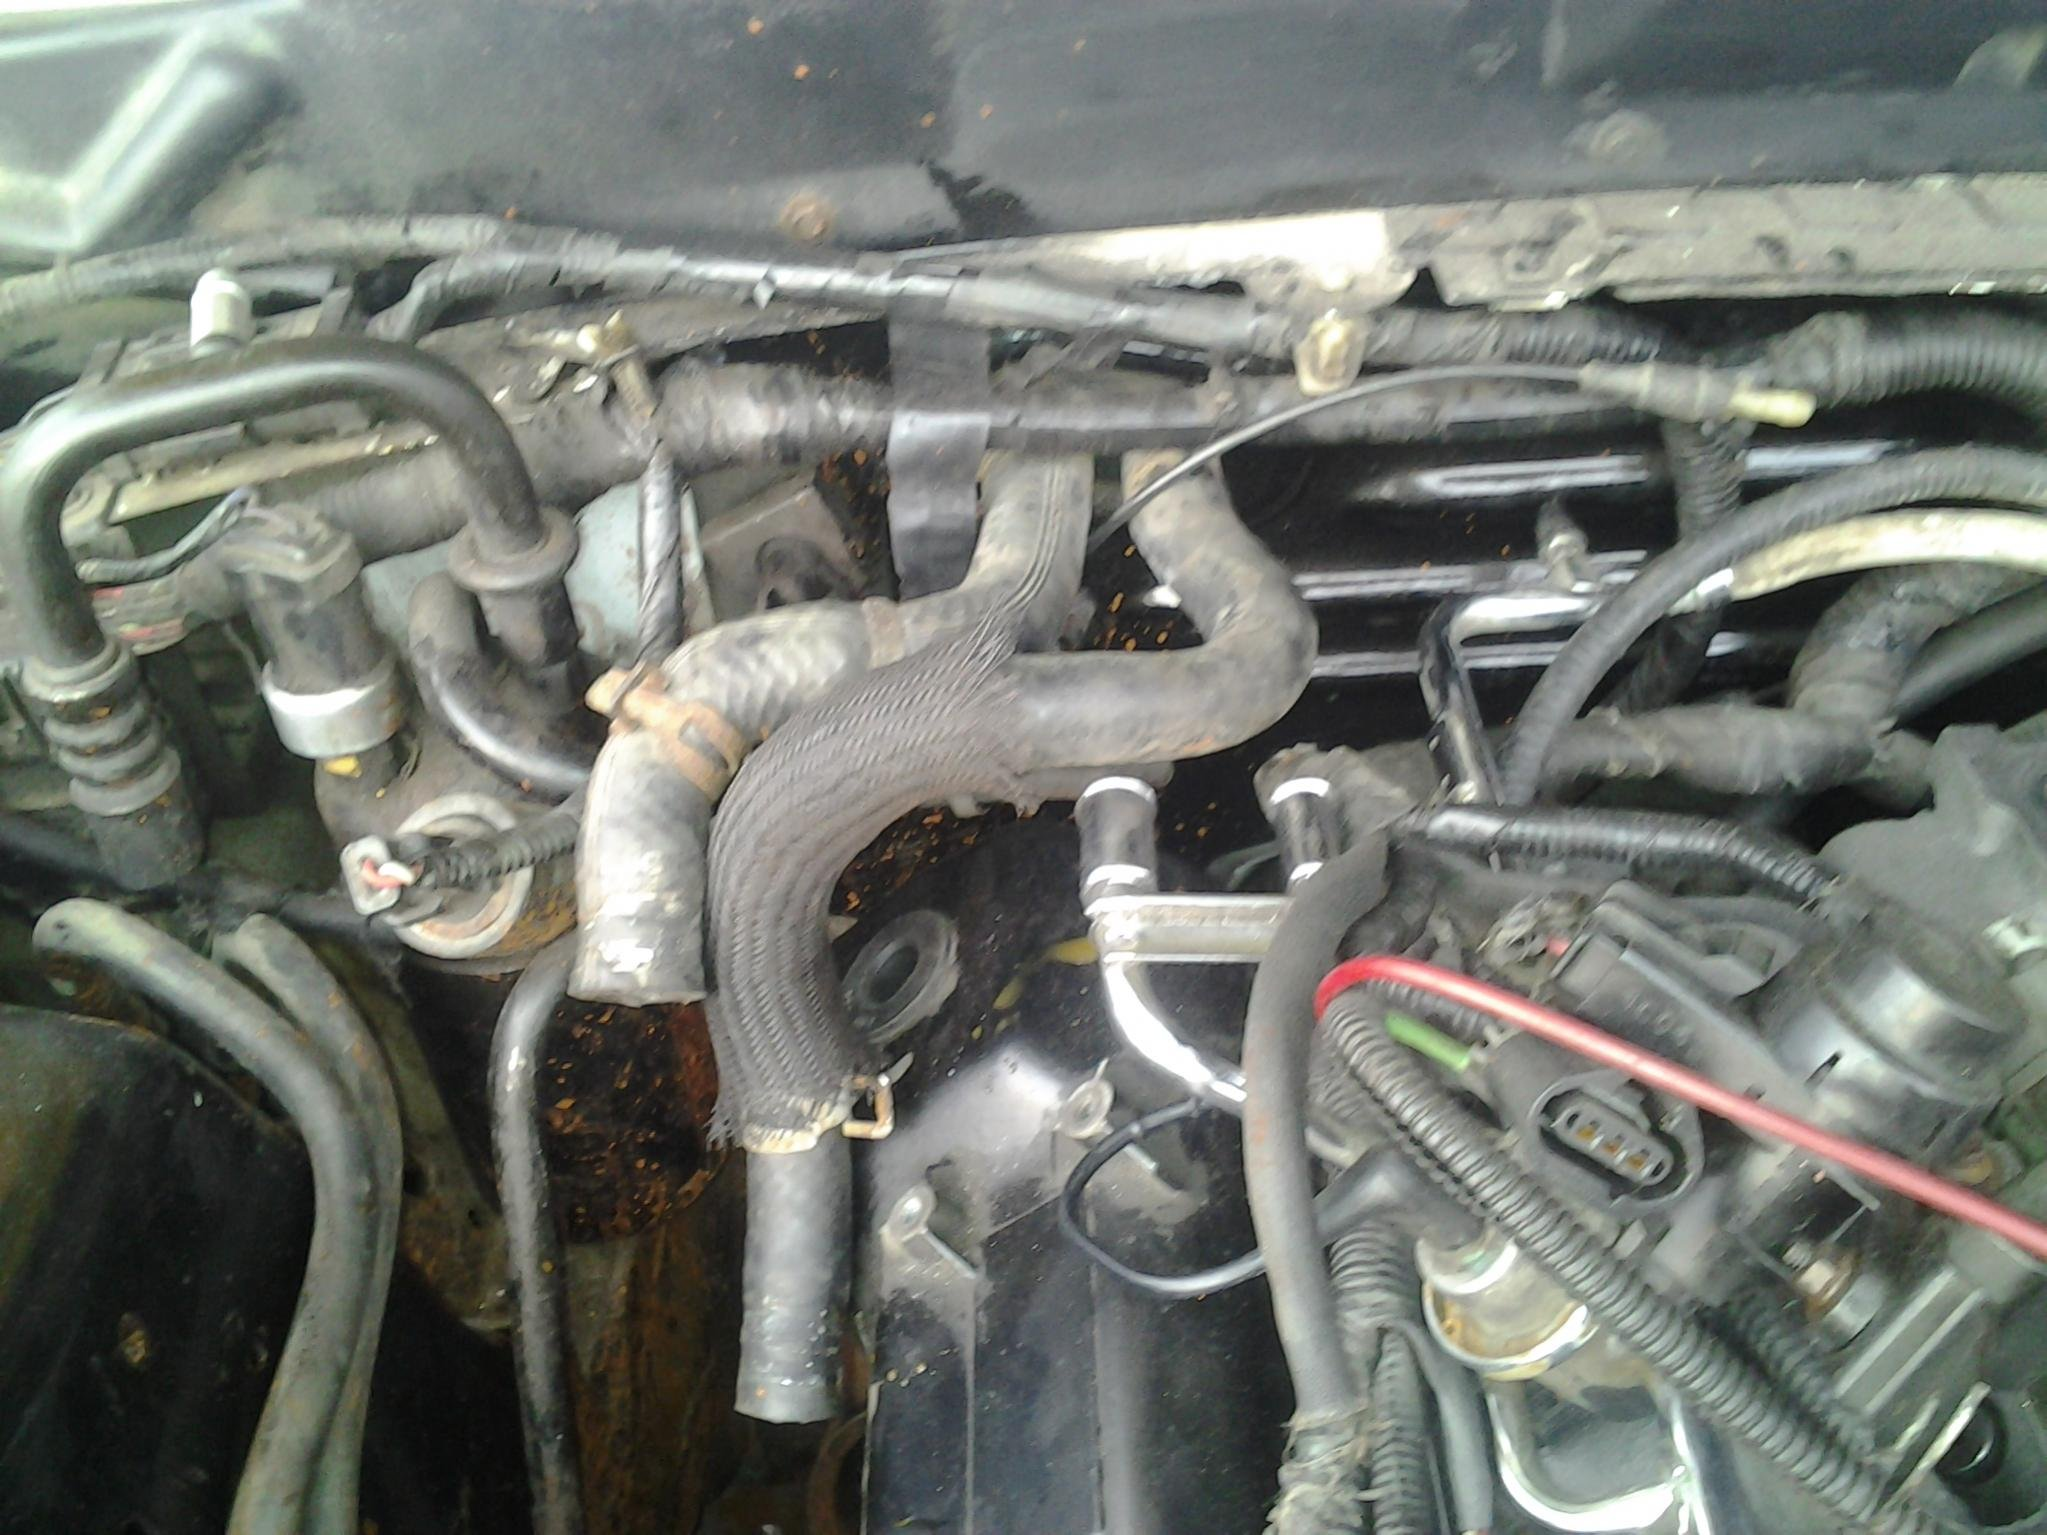 94 mustang 3.8 wiring harness locations? drove nuts!! what plugs are for what??-20120704_195613.jpg